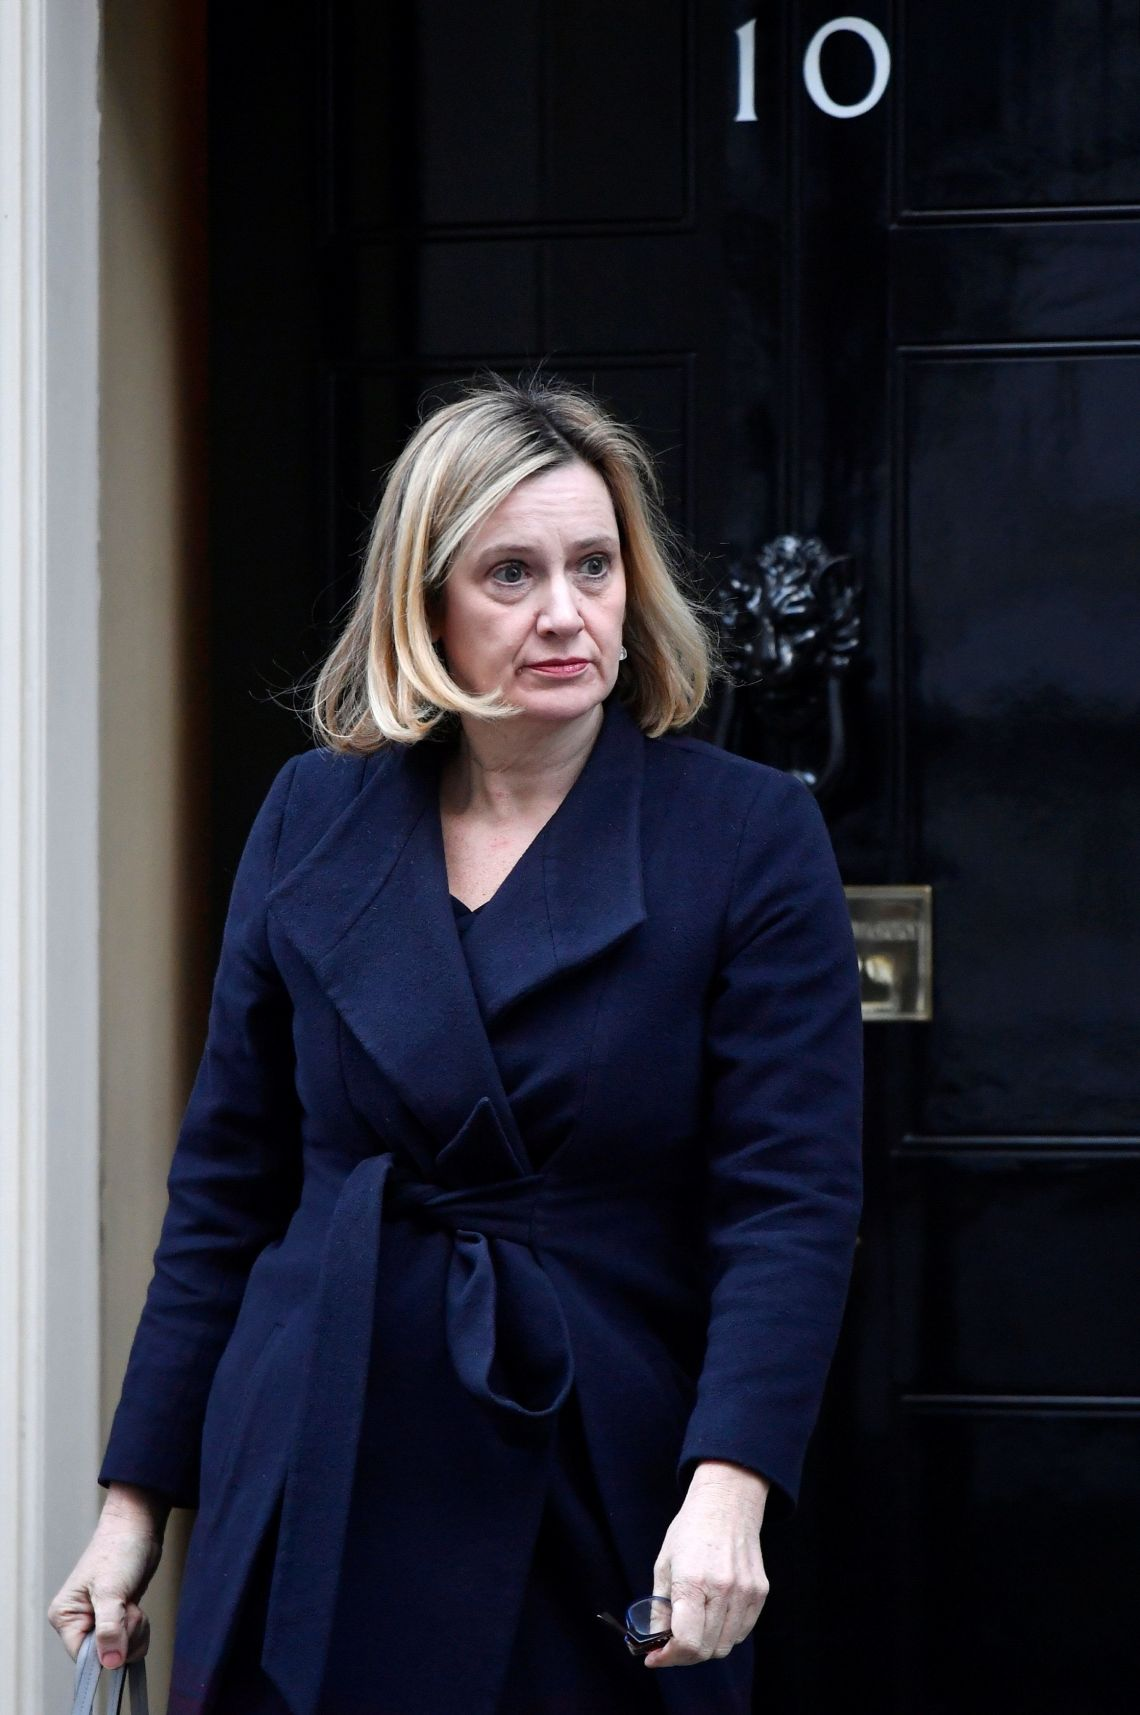 Work and Pensions Secretary Amber Rudd leaving Cabinet